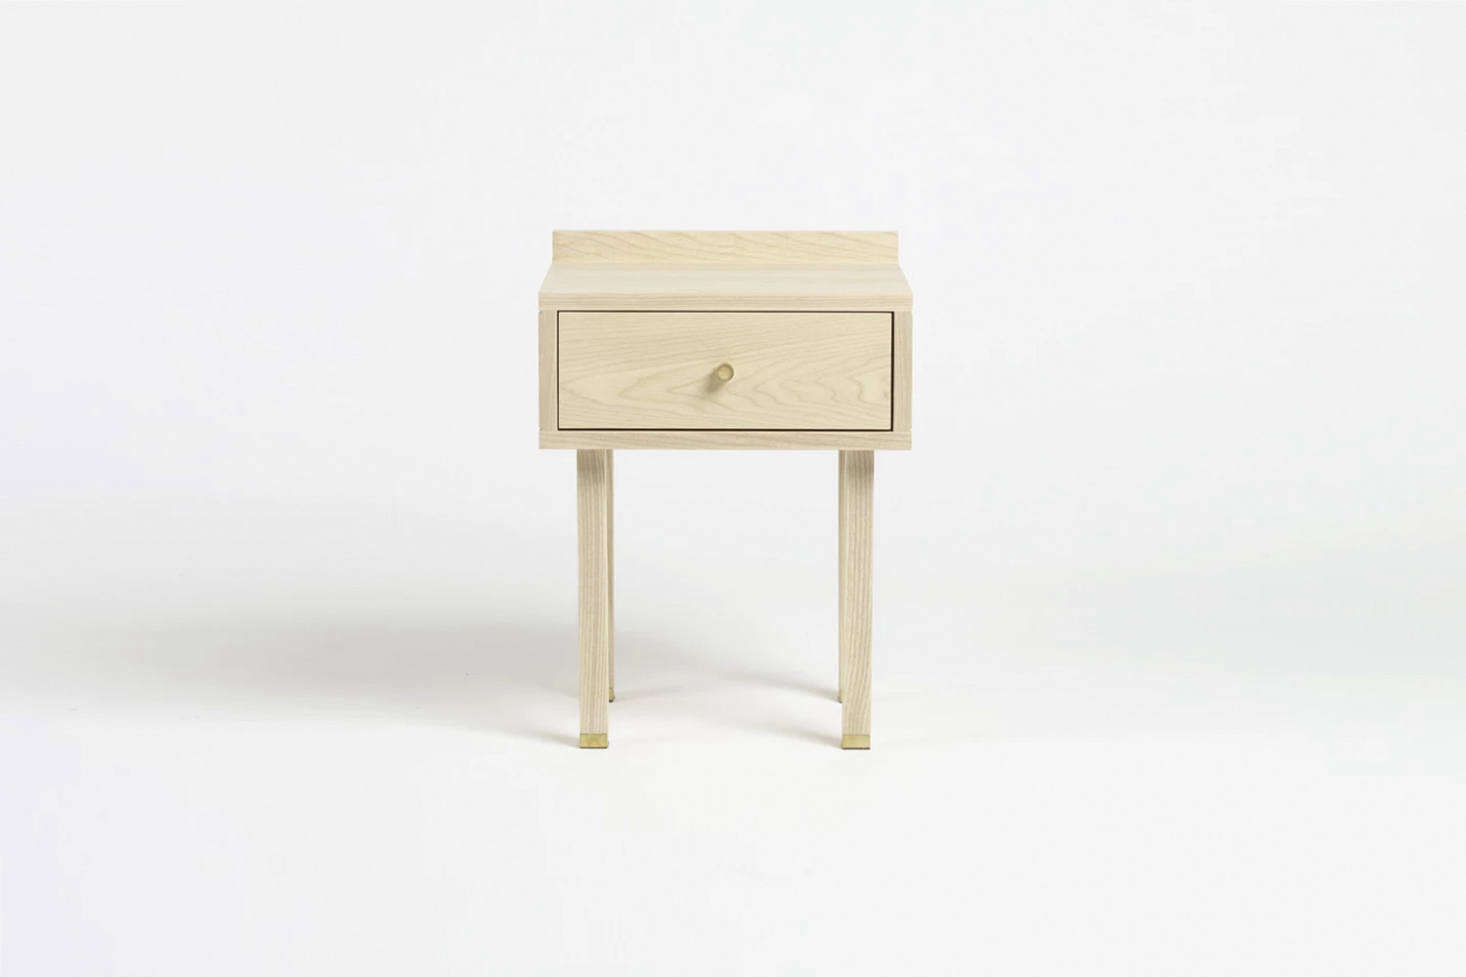 The Another Country Bedside Table Two in ash is £995 at Another Country.